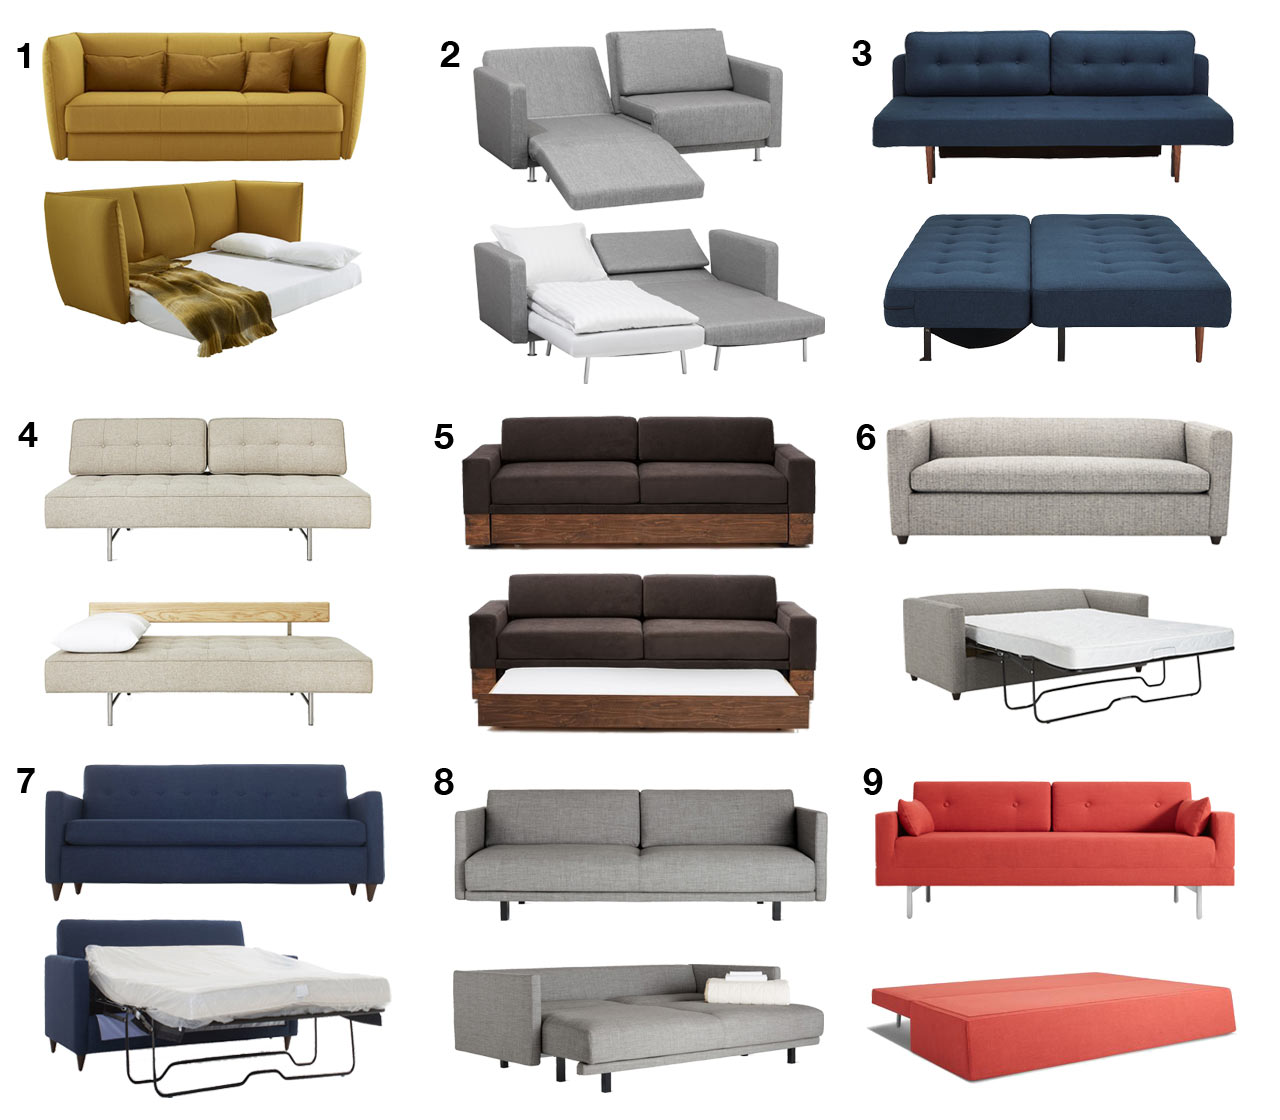 Fine Modern Sofa Beds And Sleeper Sofas Your Guests Wont Hate To Gmtry Best Dining Table And Chair Ideas Images Gmtryco